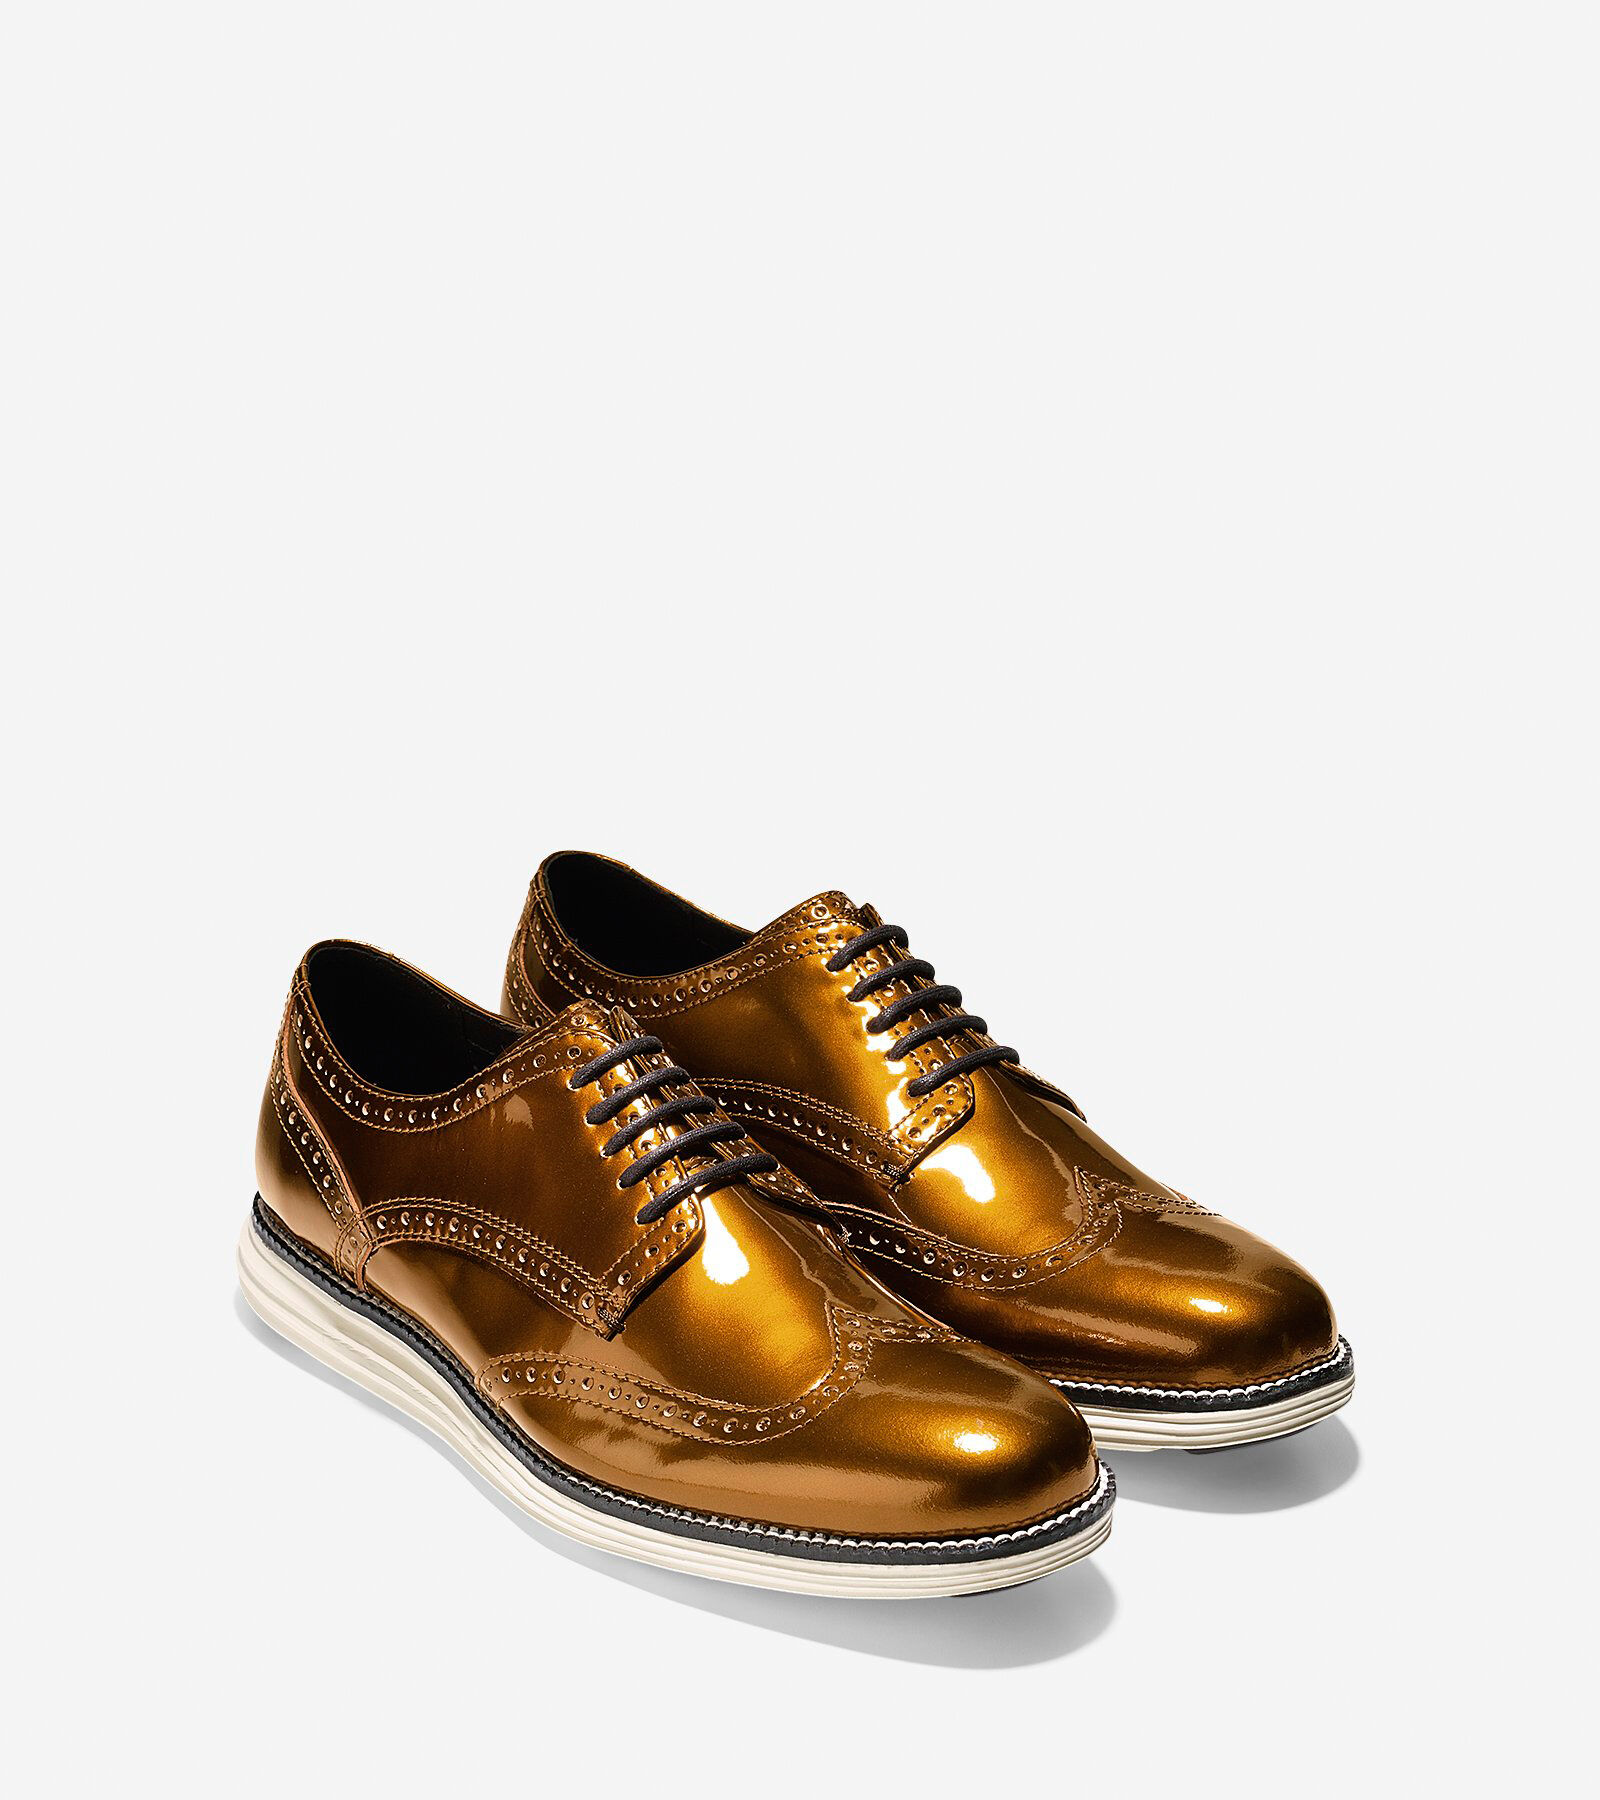 ... Men's ØriginalGrand Wingtip Oxford; Men's ØriginalGrand Wingtip Oxford.  #colehaan